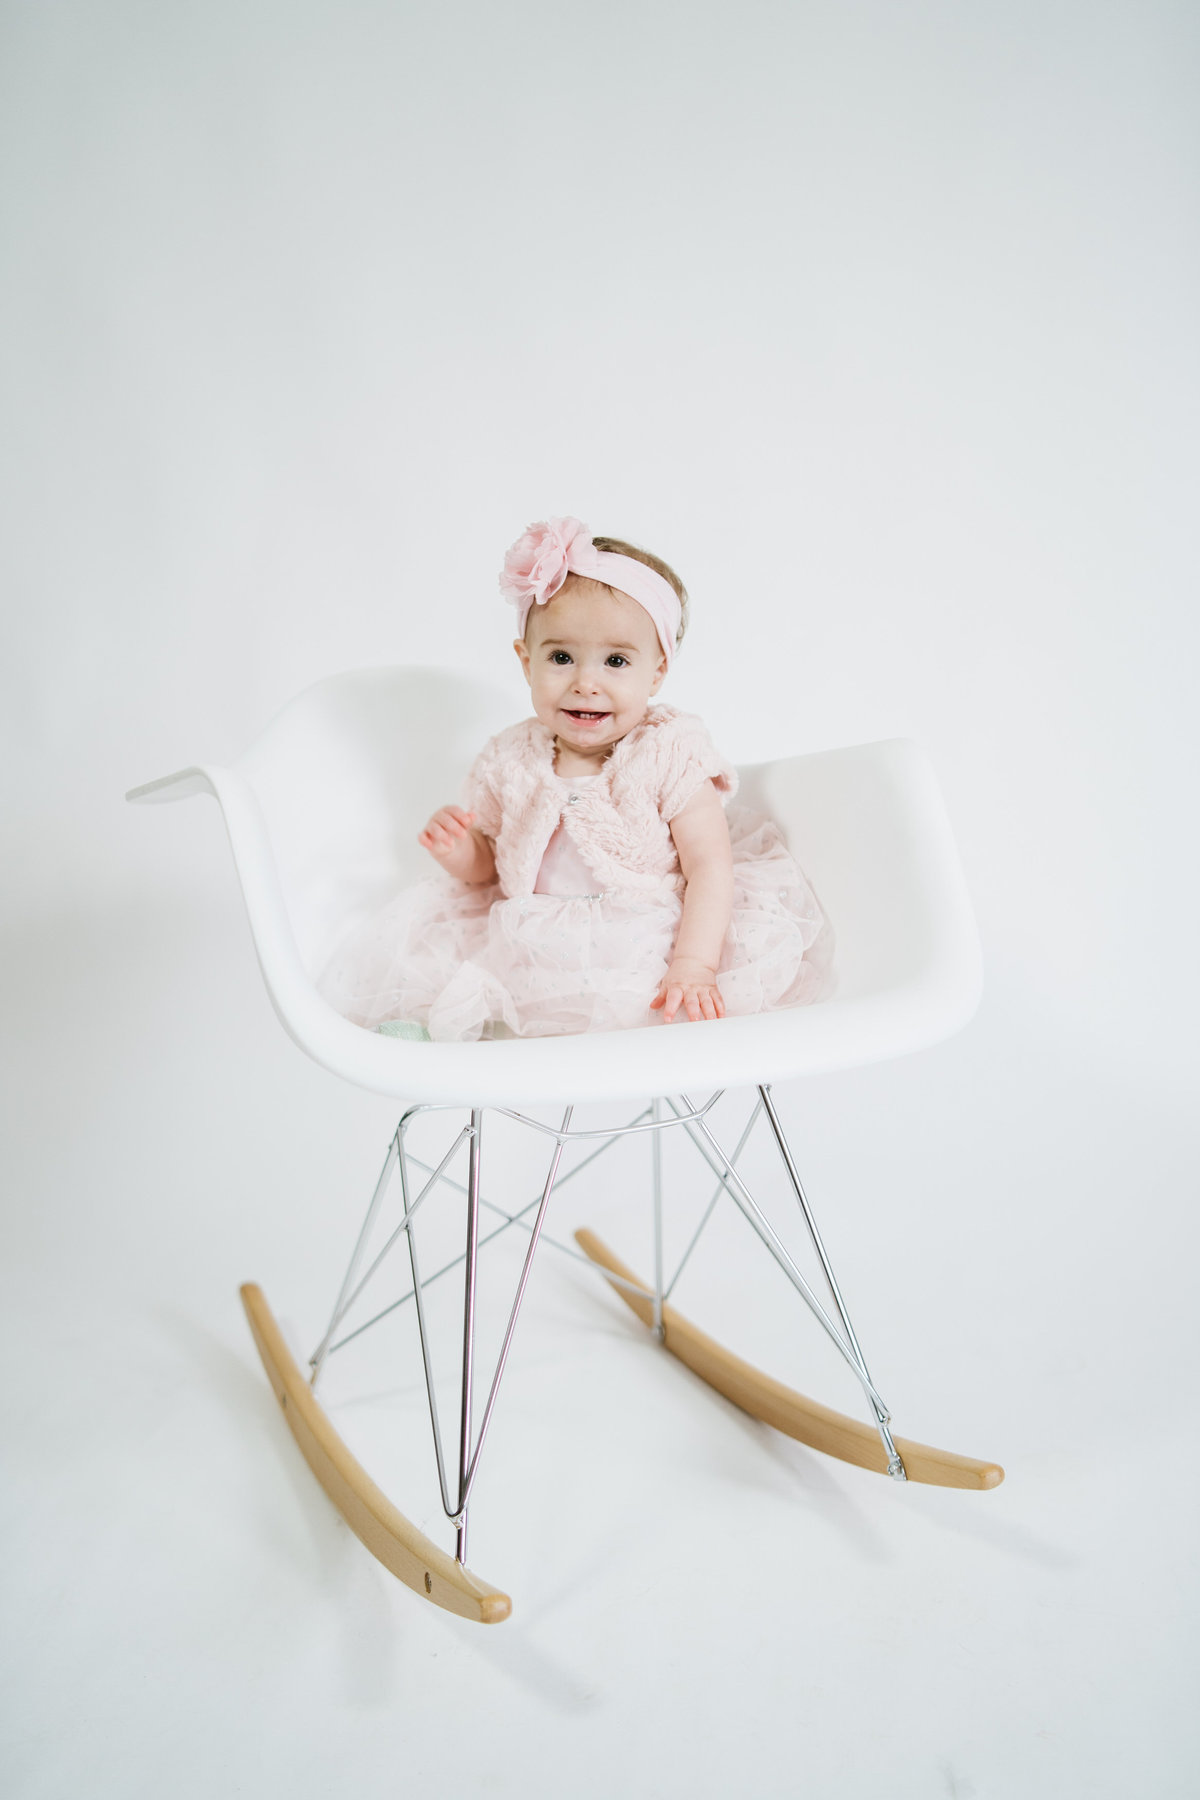 Baby toddler sitting in Eames rocking chair wearing pink dress in San Antonio photo studio on a white background